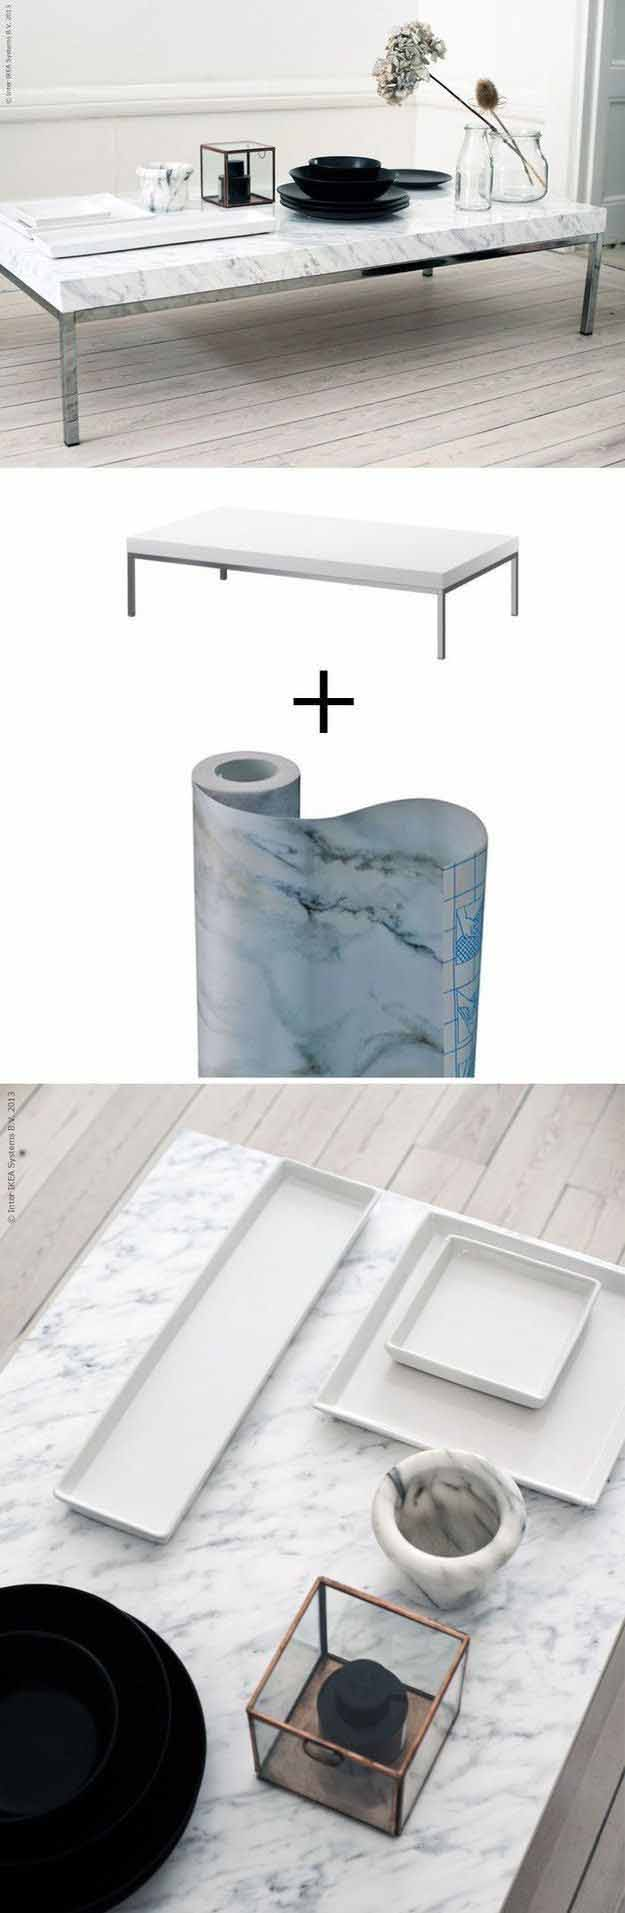 DIY Home Decor On a Budget | Easy Furniture Projects | Faux Marble DIY Coffee Table | DIY Projects and Crafts by DIY JOY #coffeetables #diyfurniture